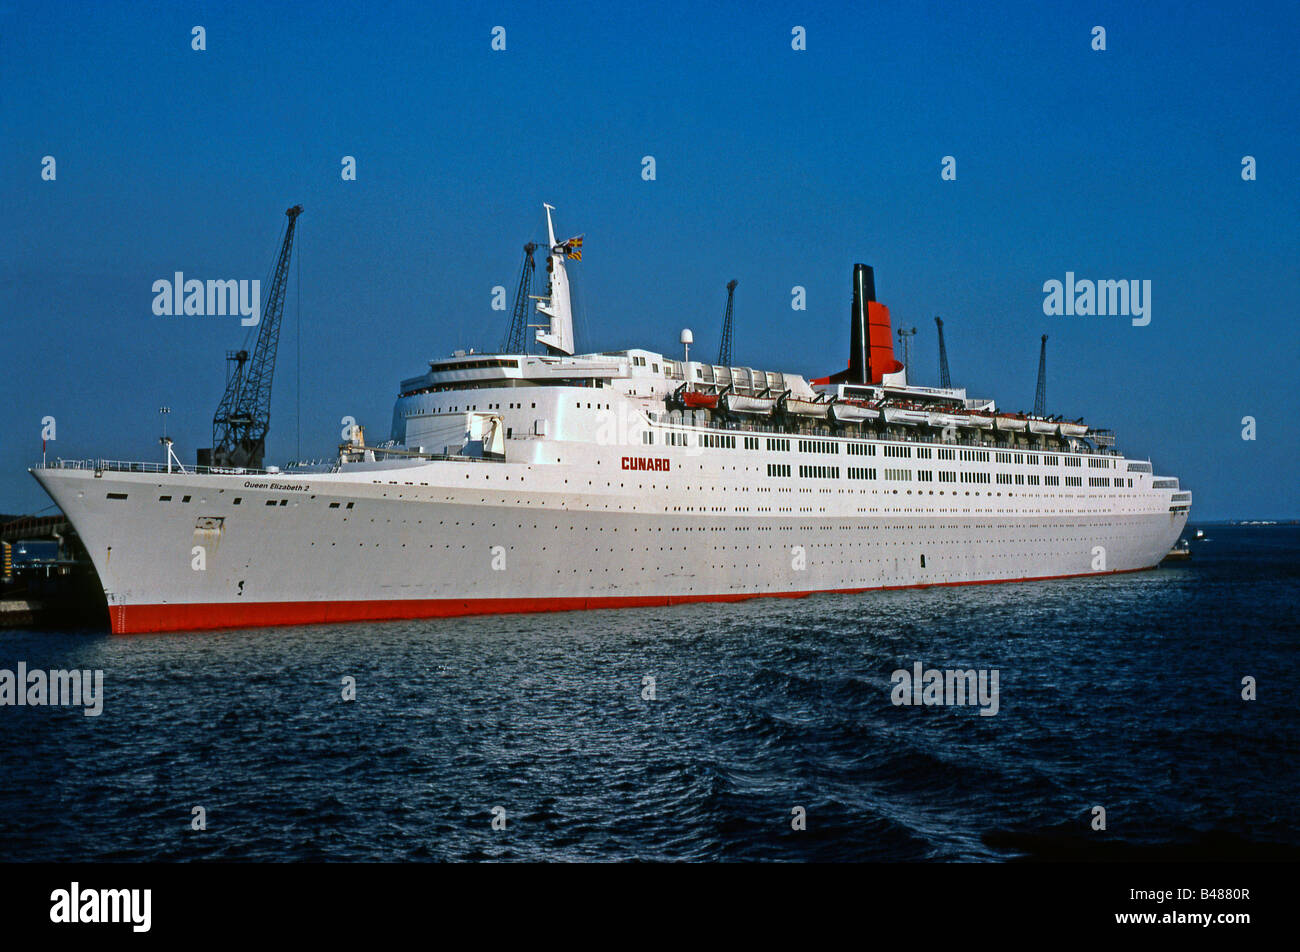 Cunard Line's QE2 at Southampton, England in 1983 - Stock Image